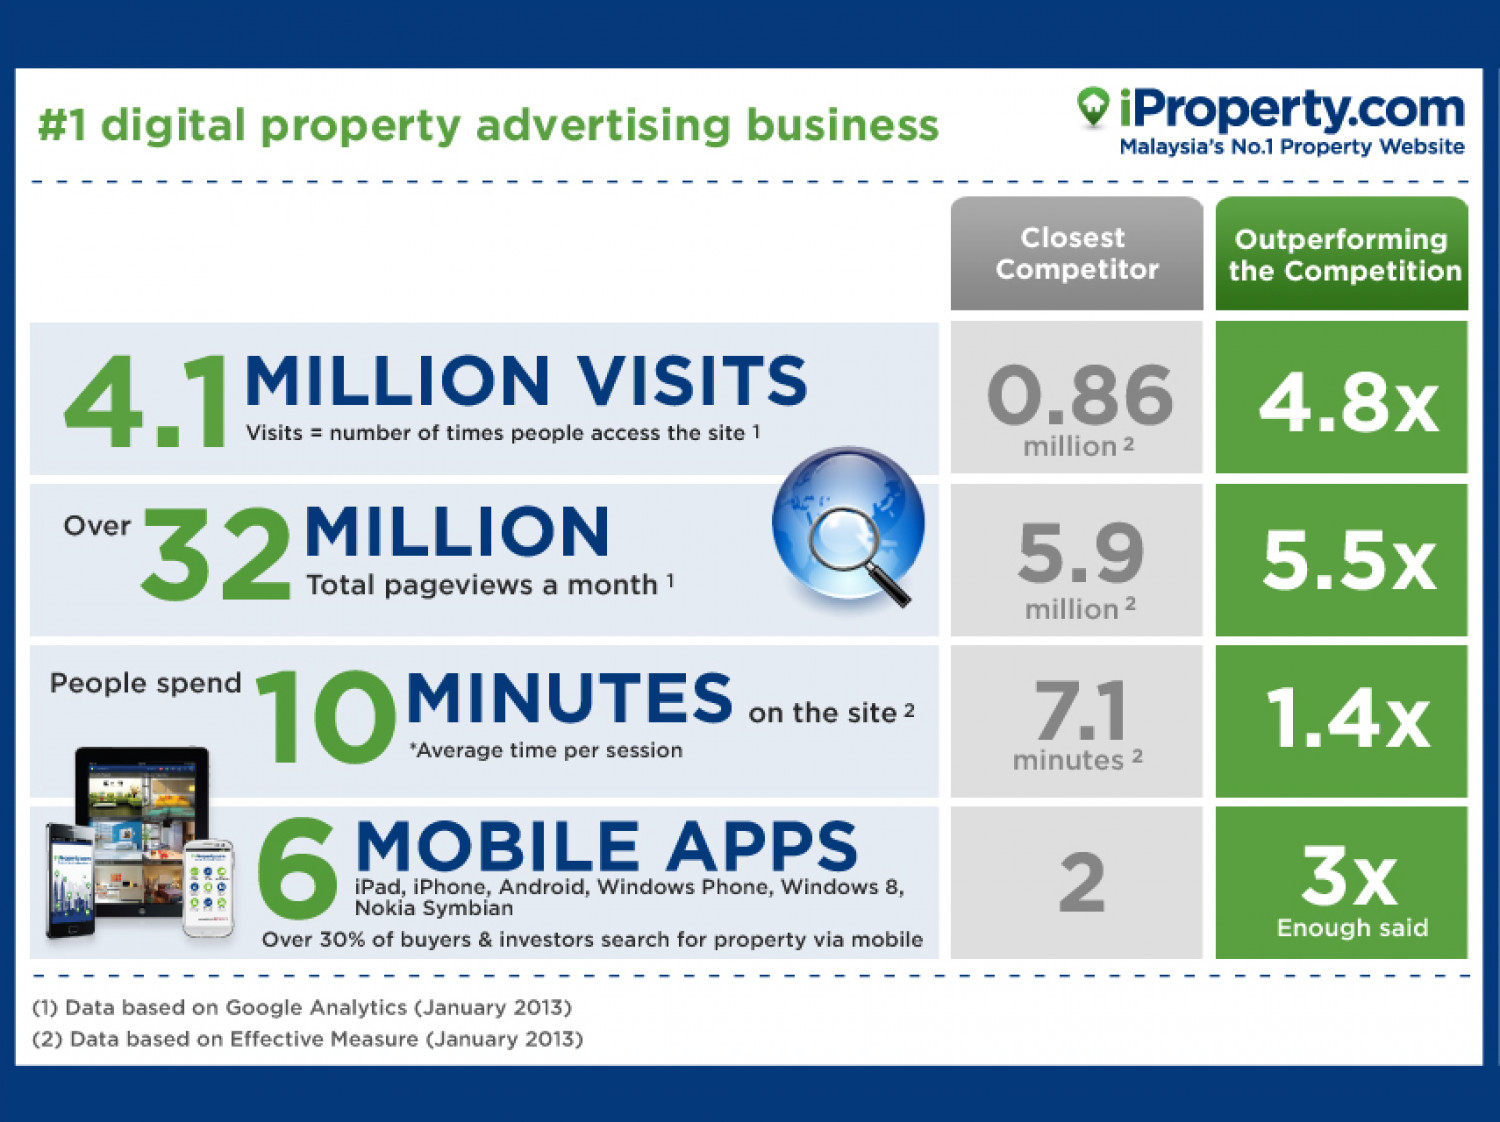 iProperty.com Malaysia  -  #1 Digital Property Advertising Business in Malaysia Infographic